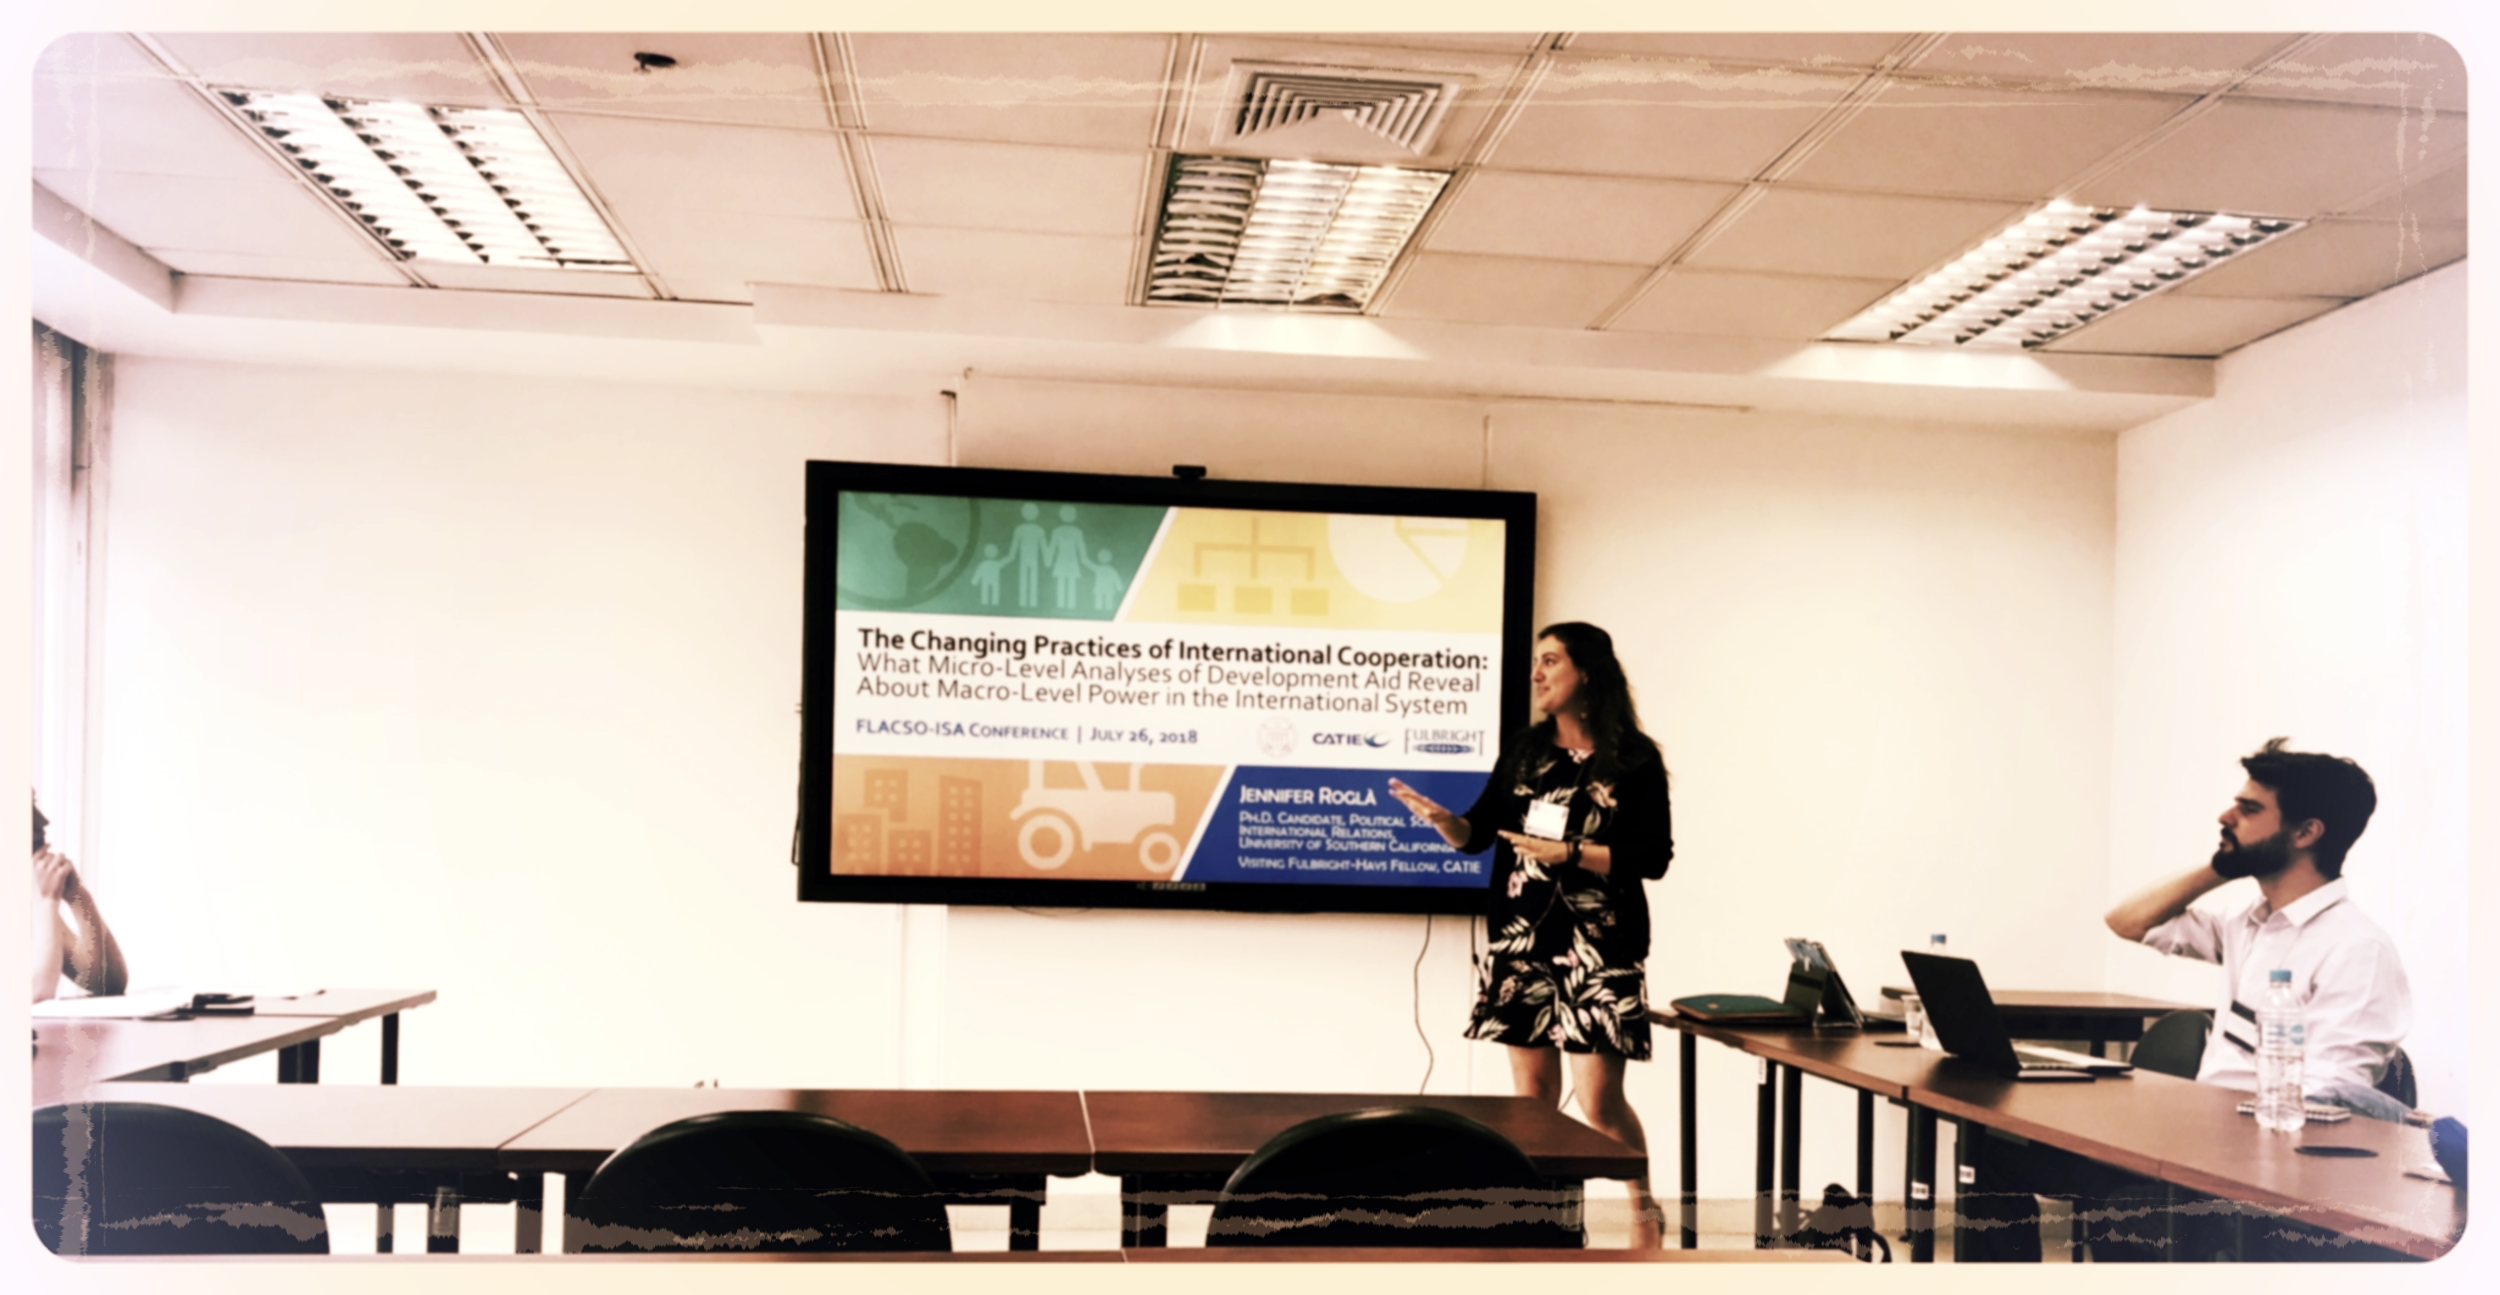 Speaking: Presentation at the ISA-FLACSO Conference